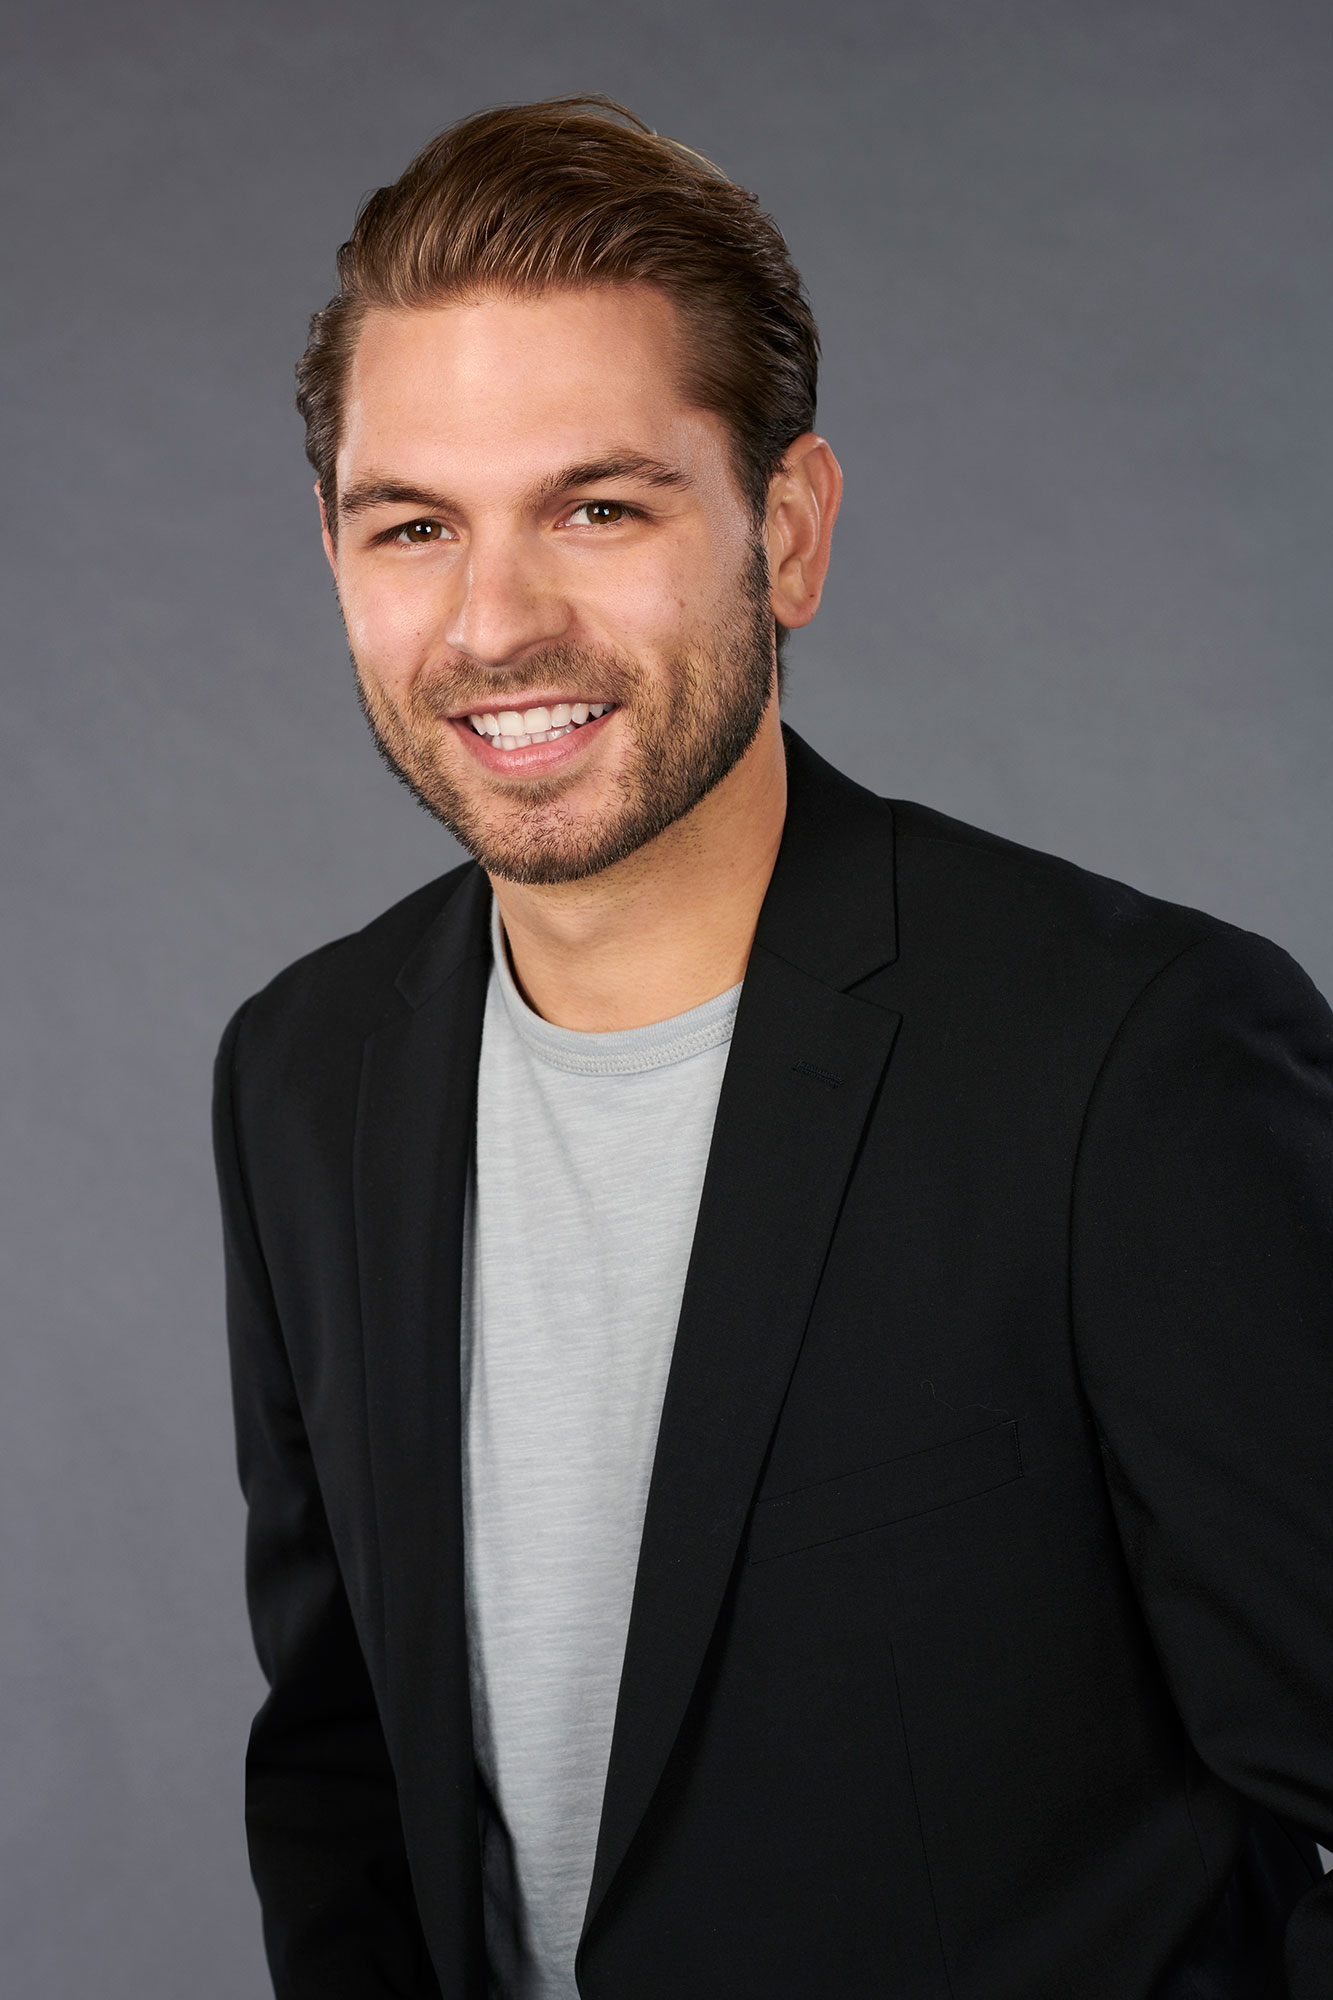 """'The Bachelorette' Season 15: 11 Strangest Revelations From Hannah Brown's Suitors' Bios - The roller boy, 25, is a skilled tightrope walker and loves the outdoors, but """"birds freak him out."""""""